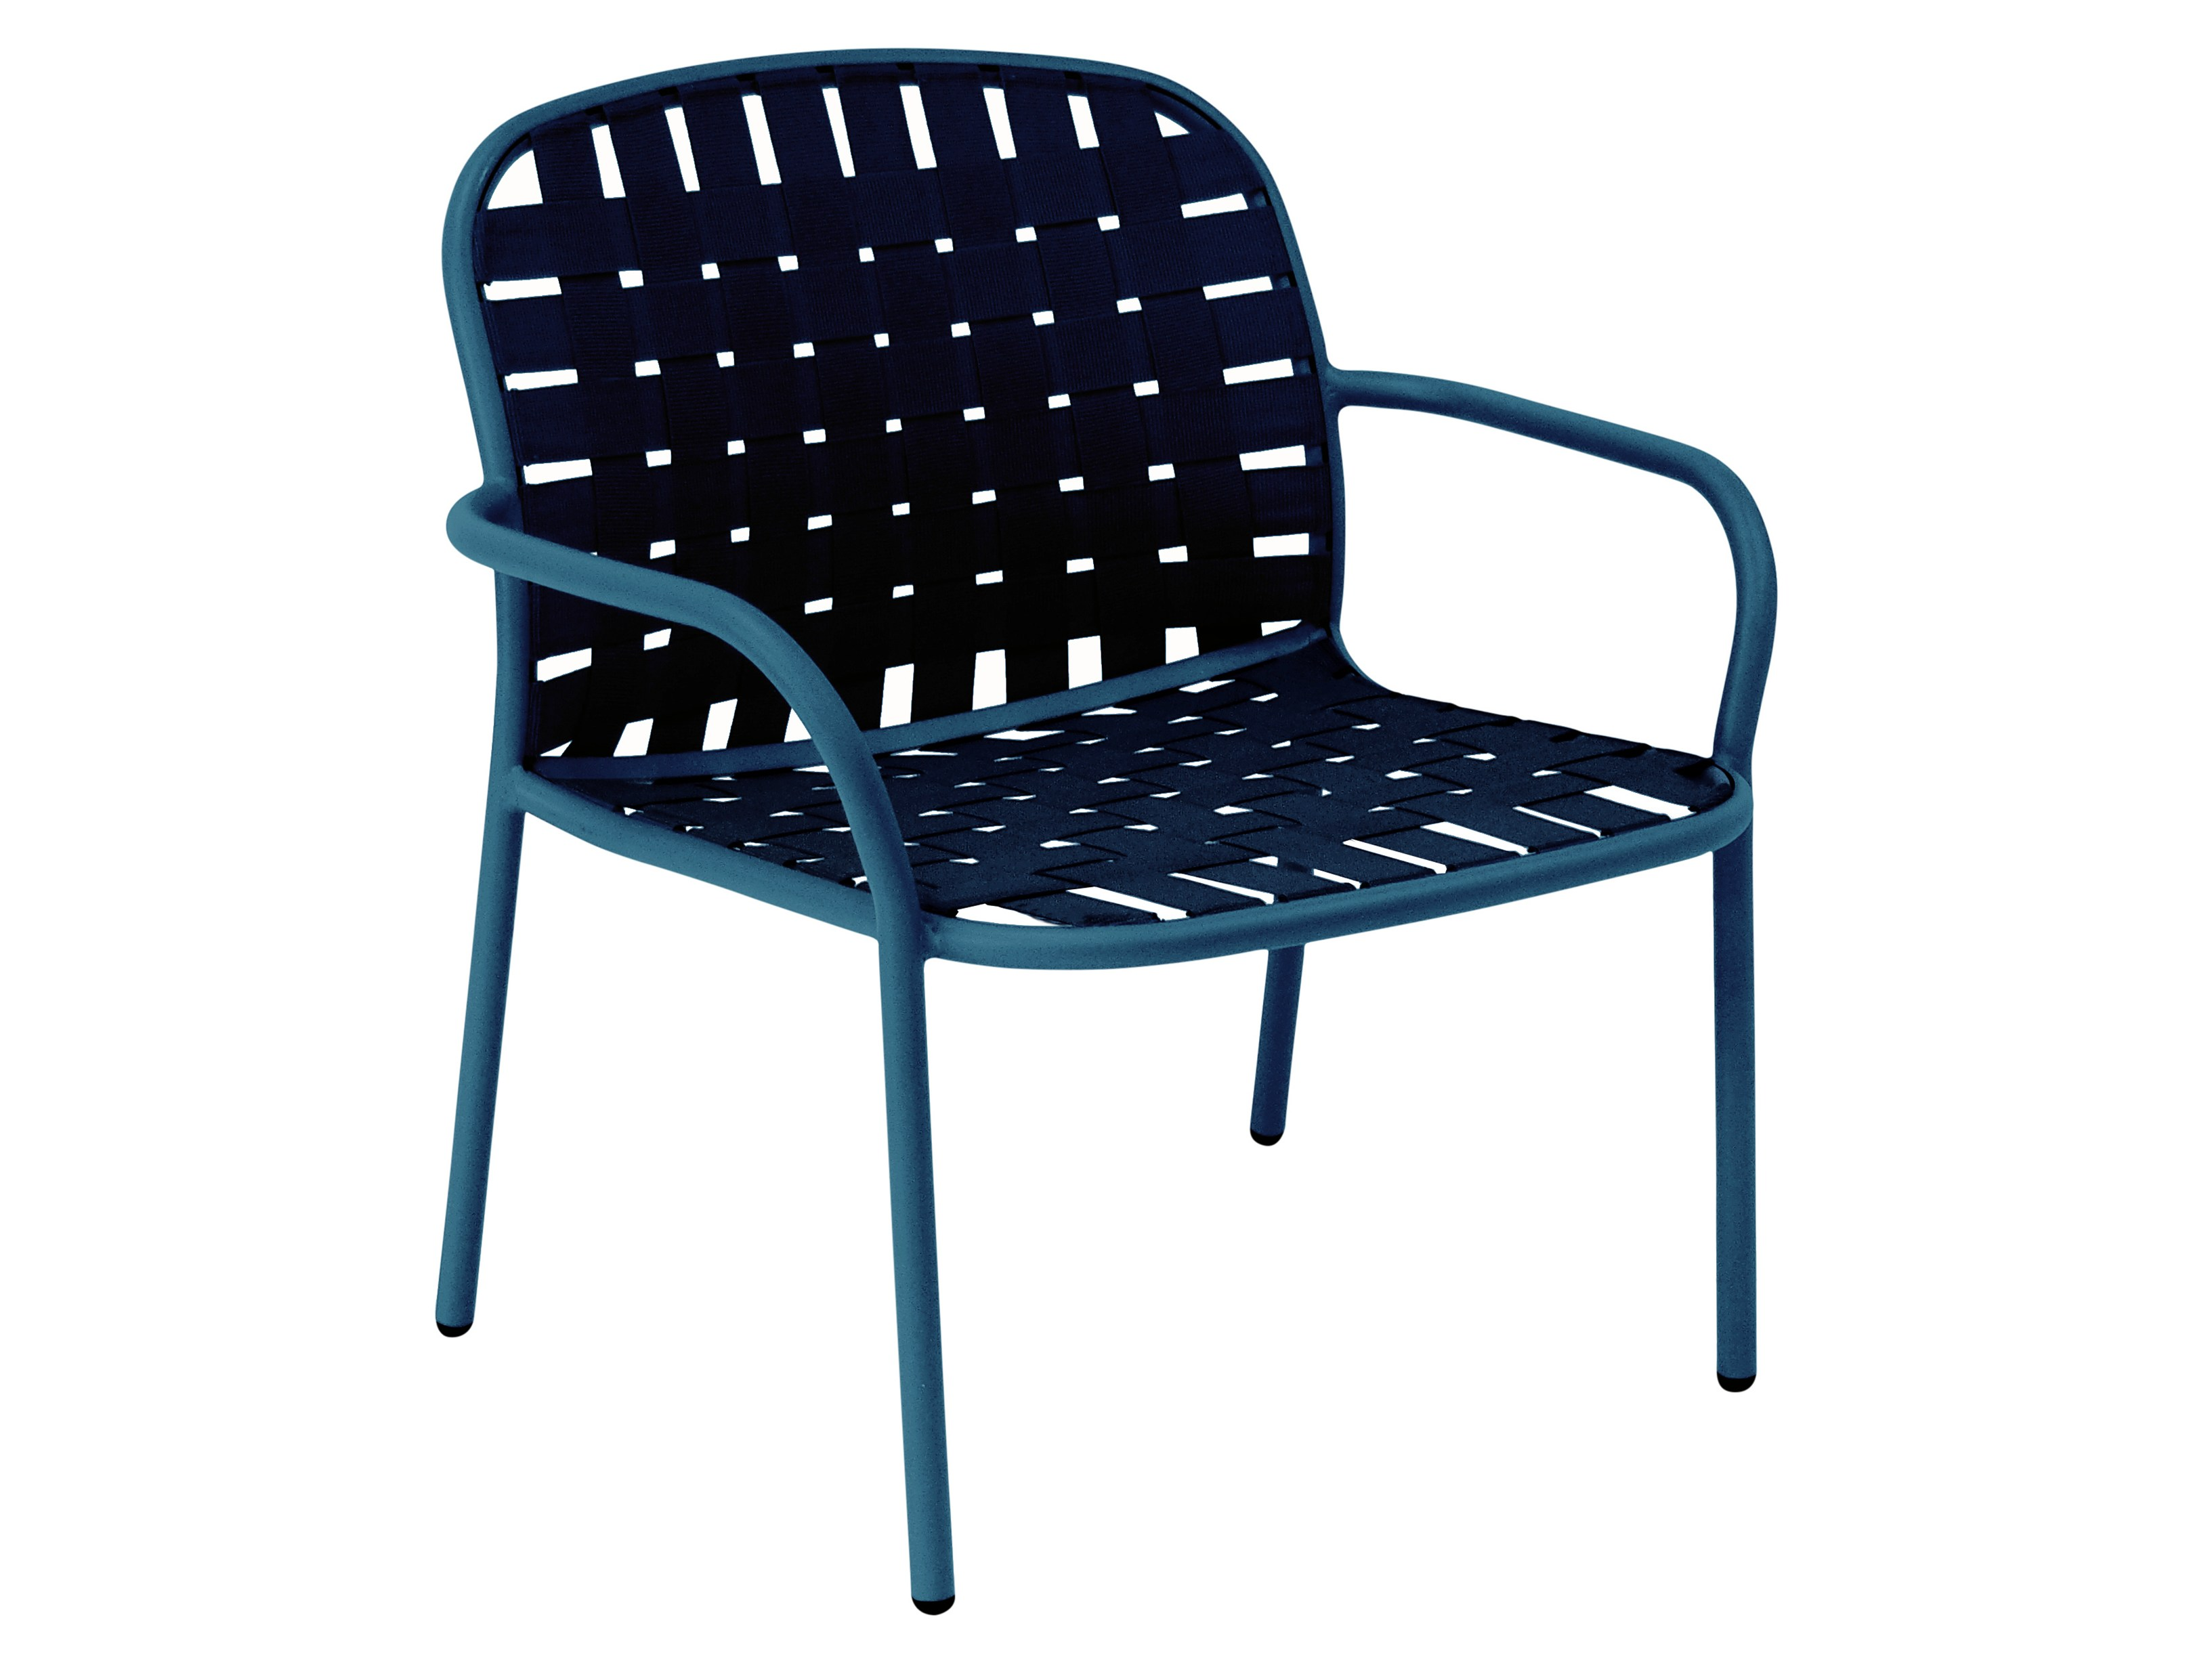 Yard Easy Chair By Stefan Diez For EMU GROUP